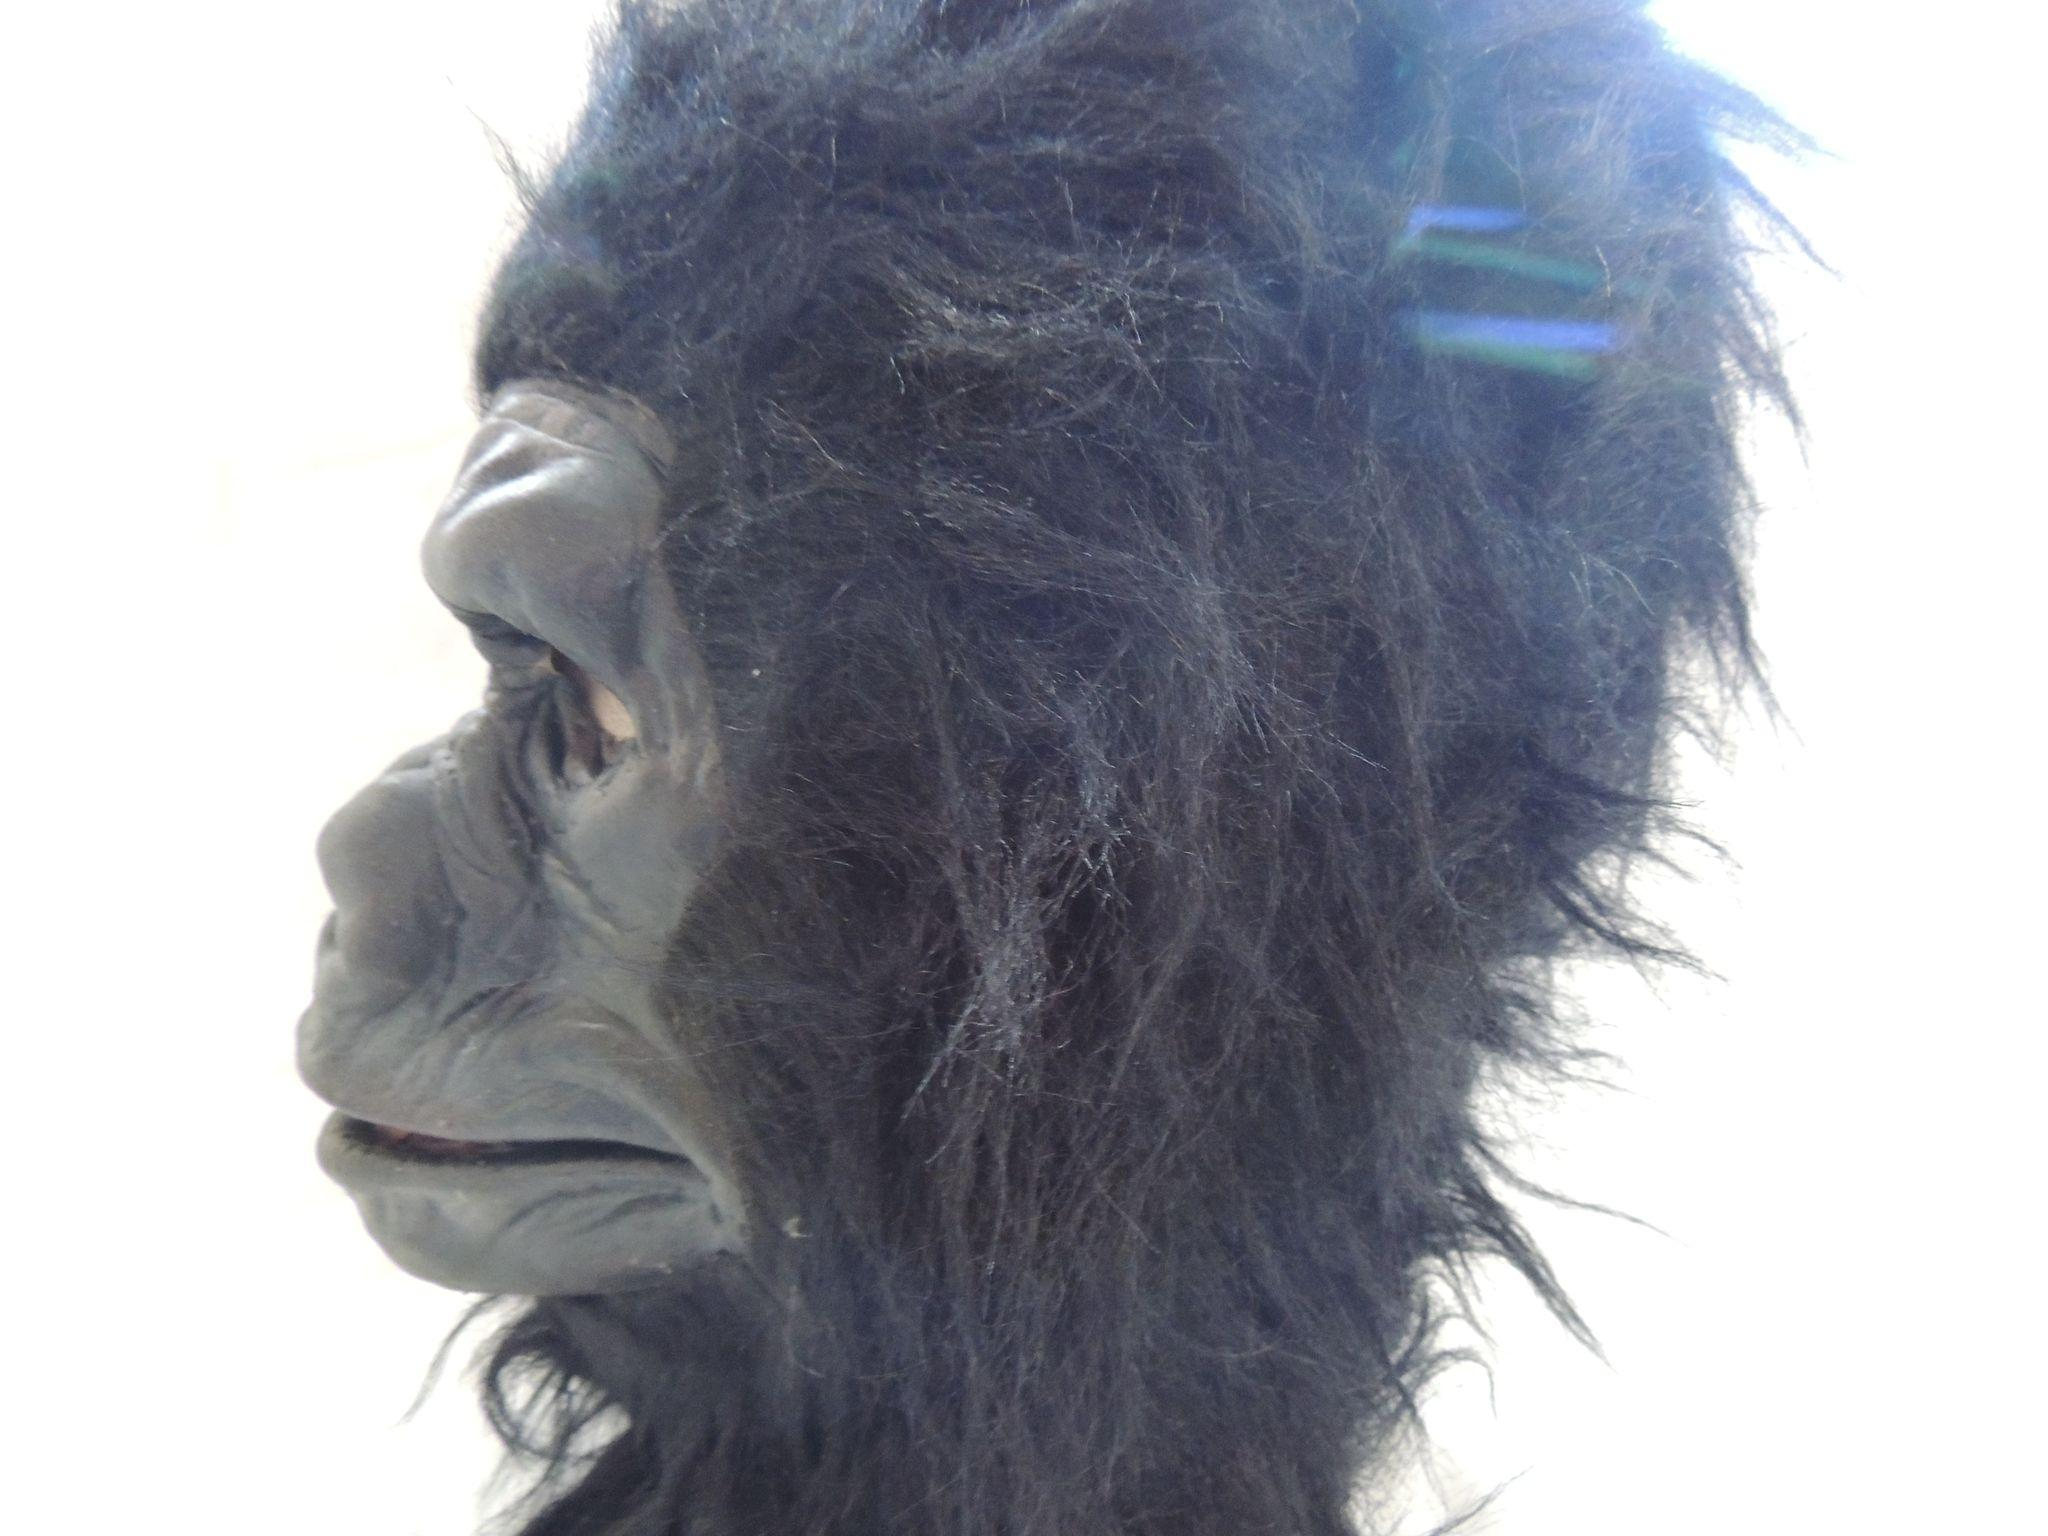 1979 Be Something Studio Halloween Gorilla Mask from ...